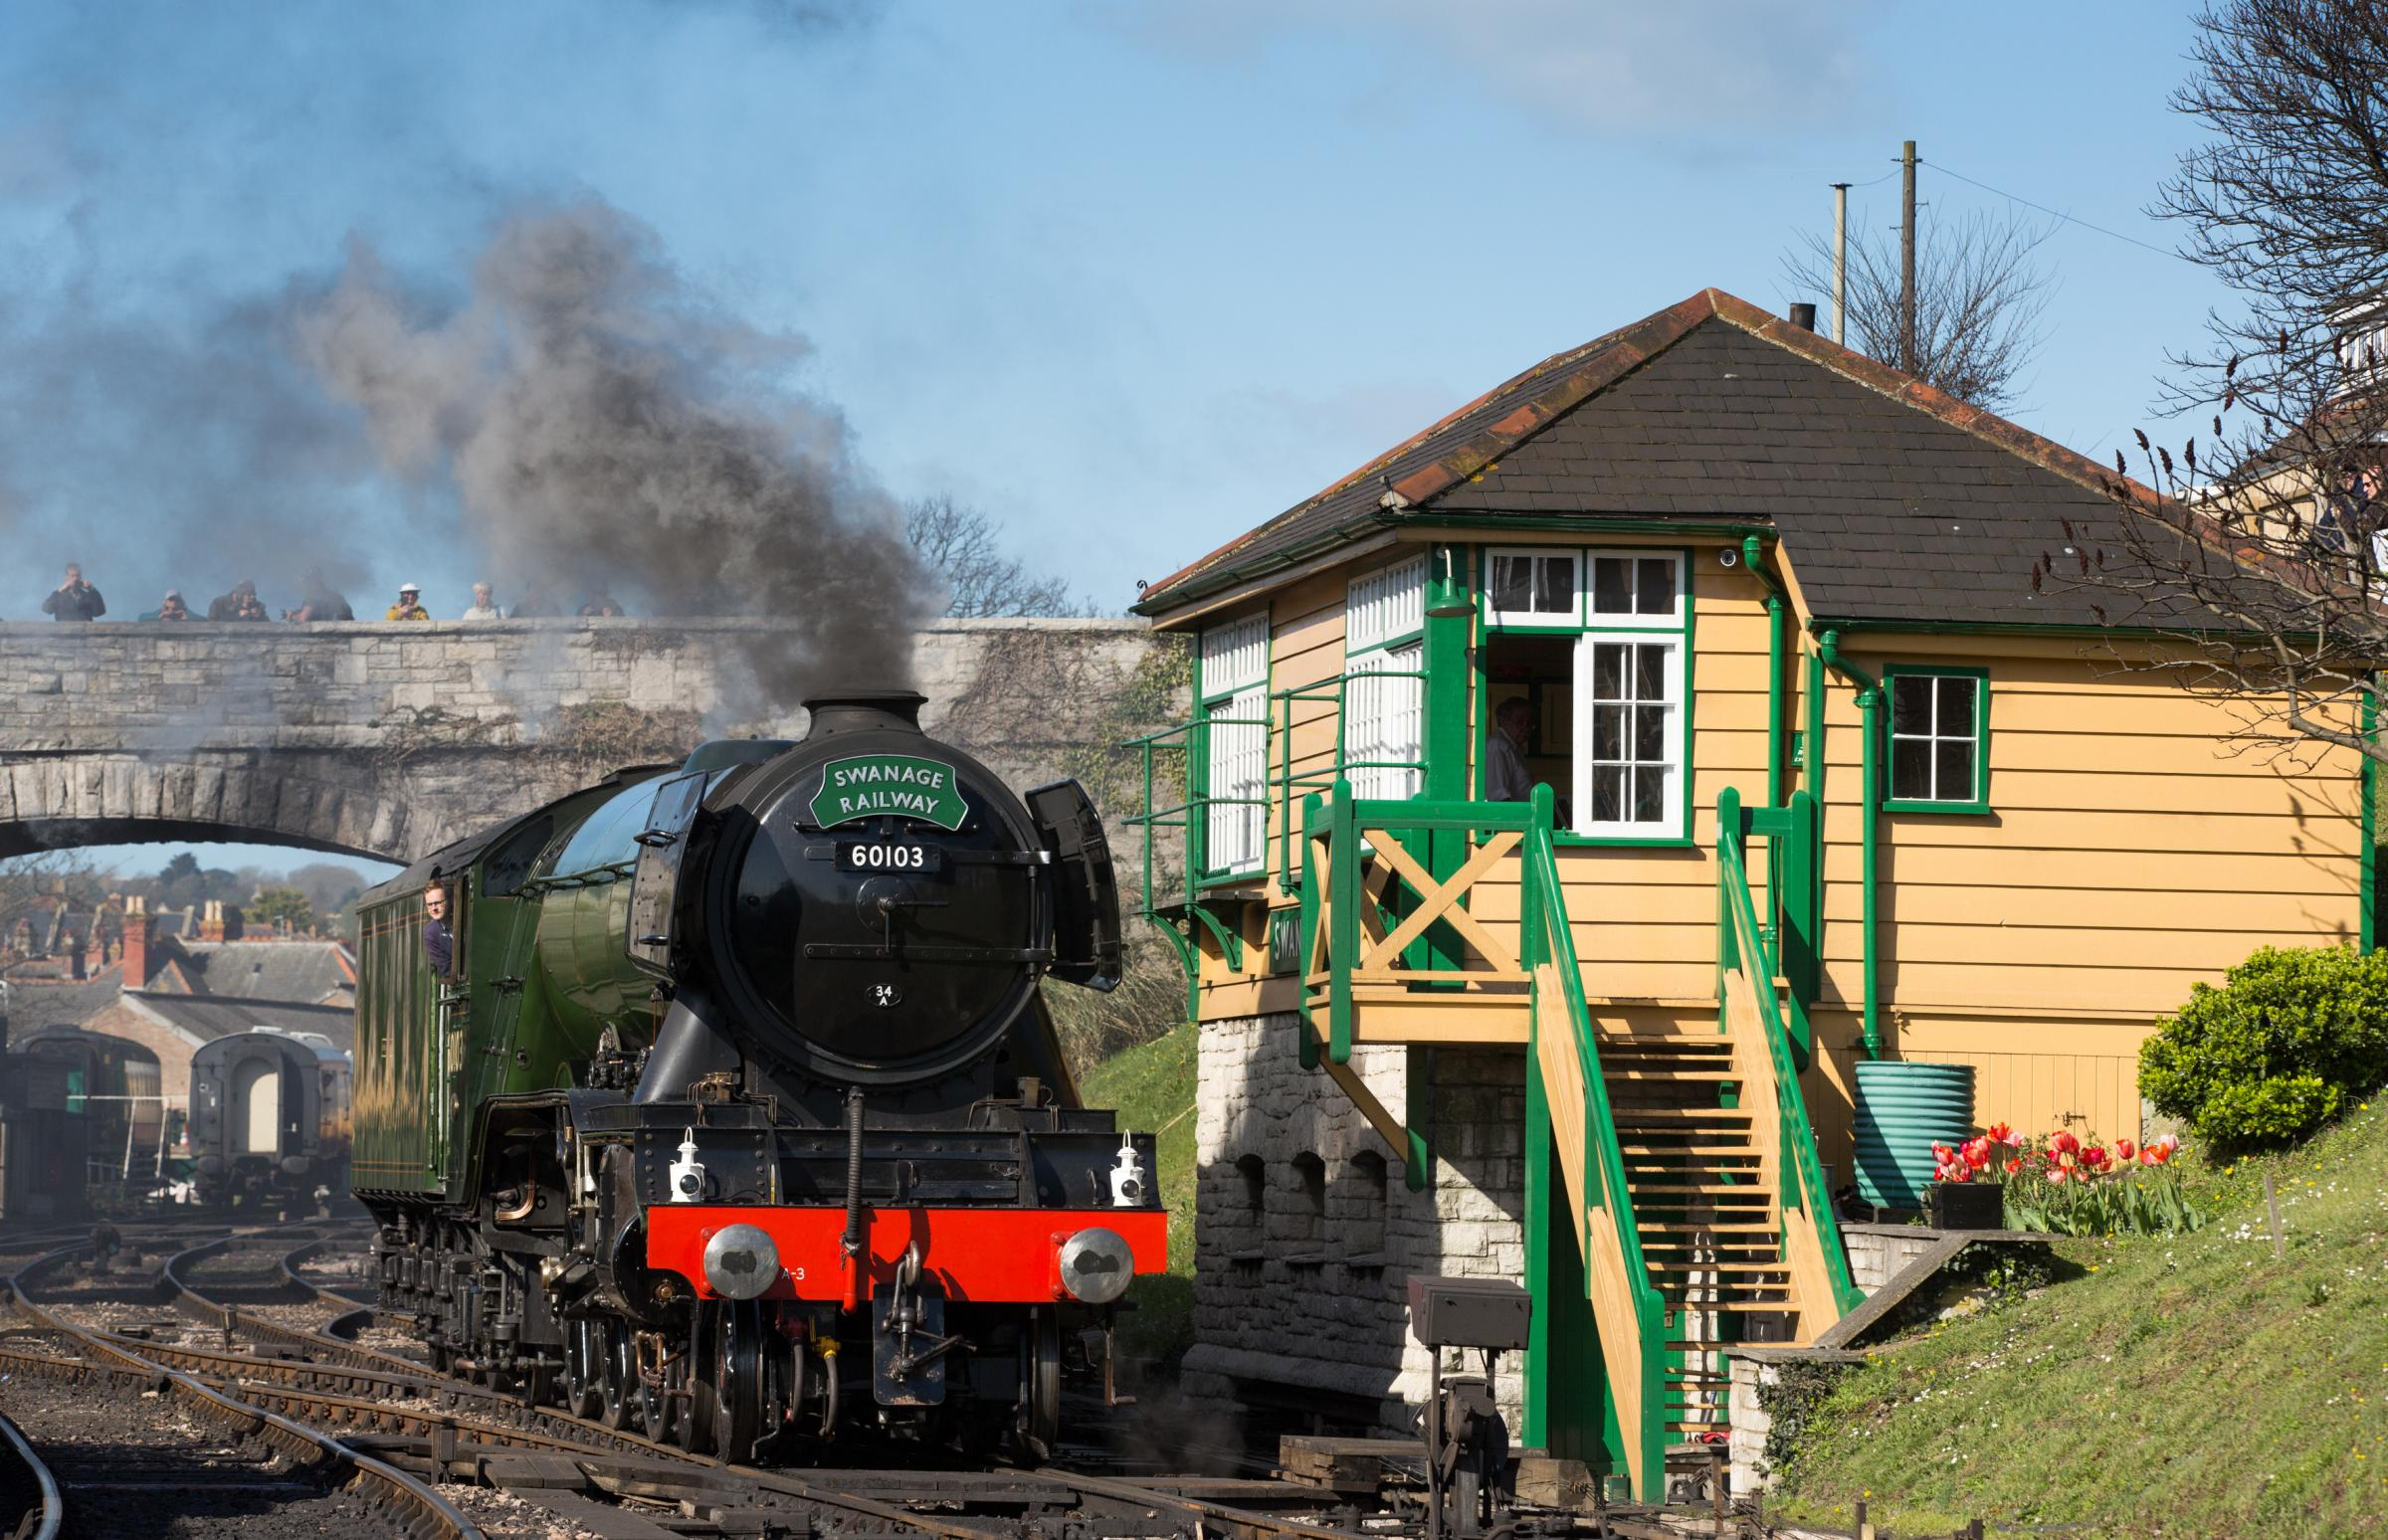 The Flying Scotsman at Swanage Railway.